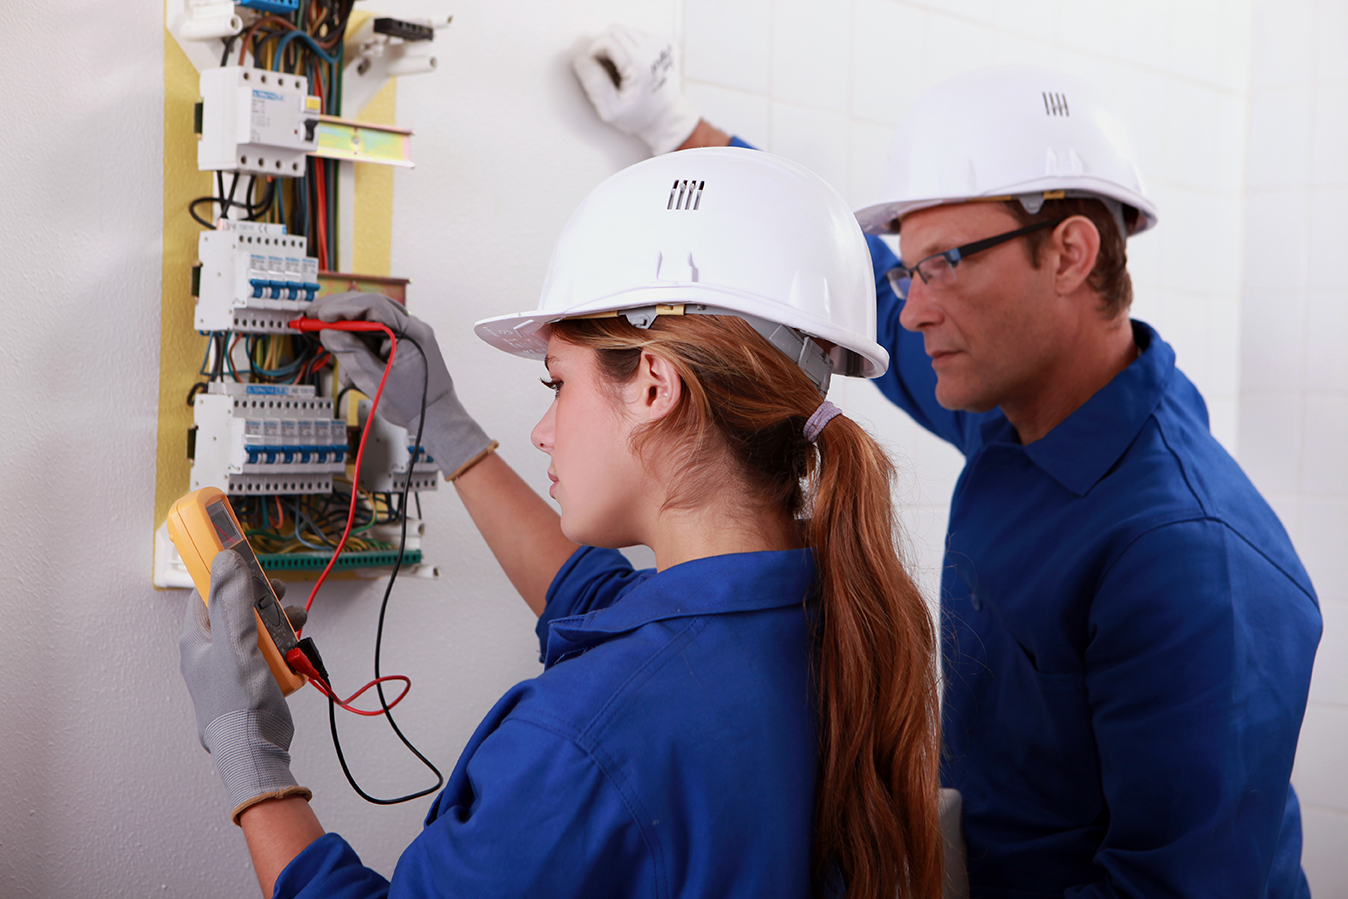 Electrical Certificate London June 2015 Contractor You Will Find Various Companies And Individuals Who Are Well Versed In Works Like Wiring Breaker Boxes Insulation Switches Repairing